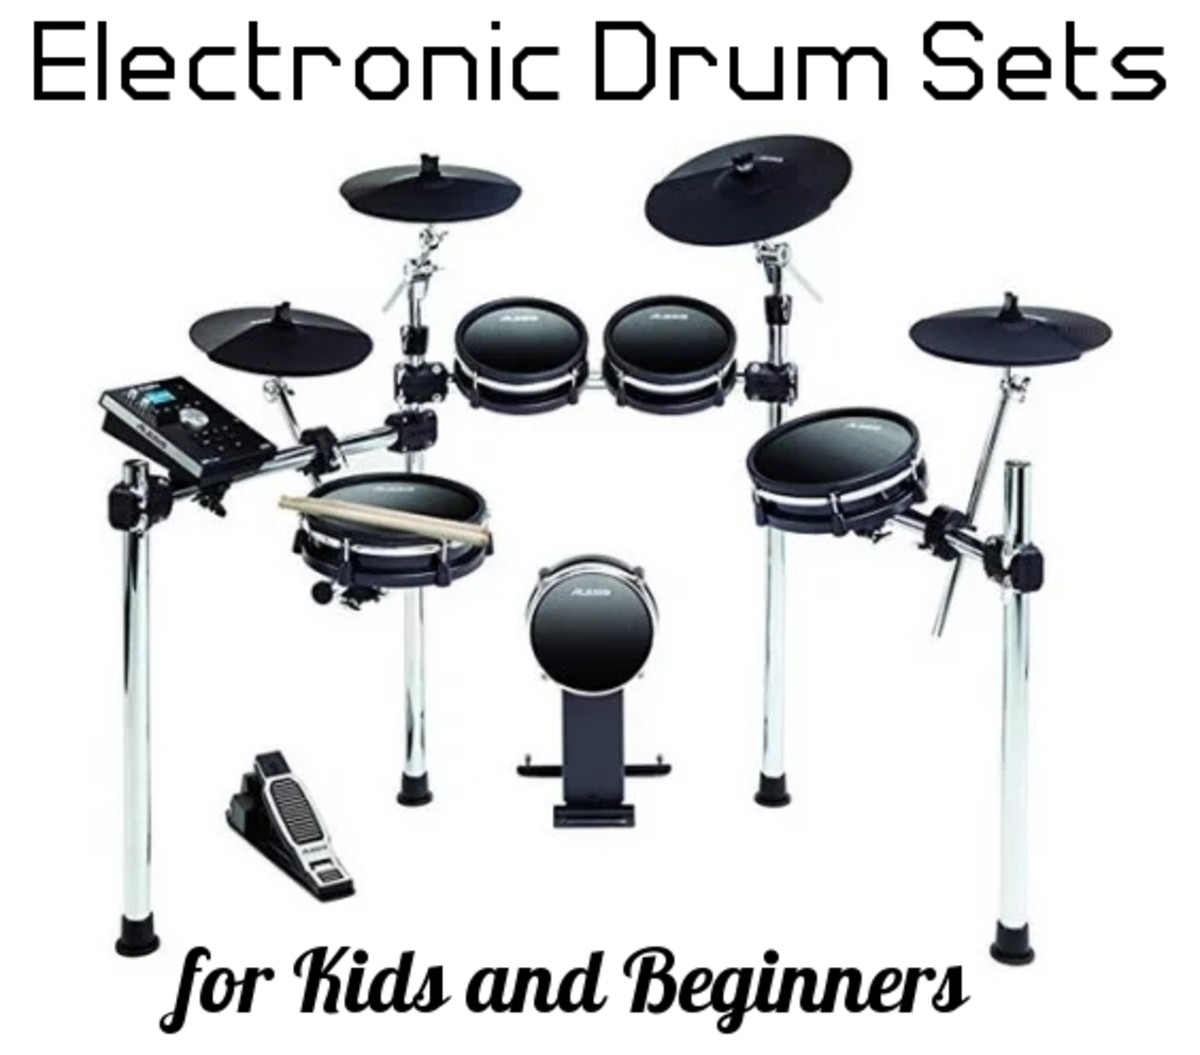 The Best Electronic Drum Sets for Kids and Beginners